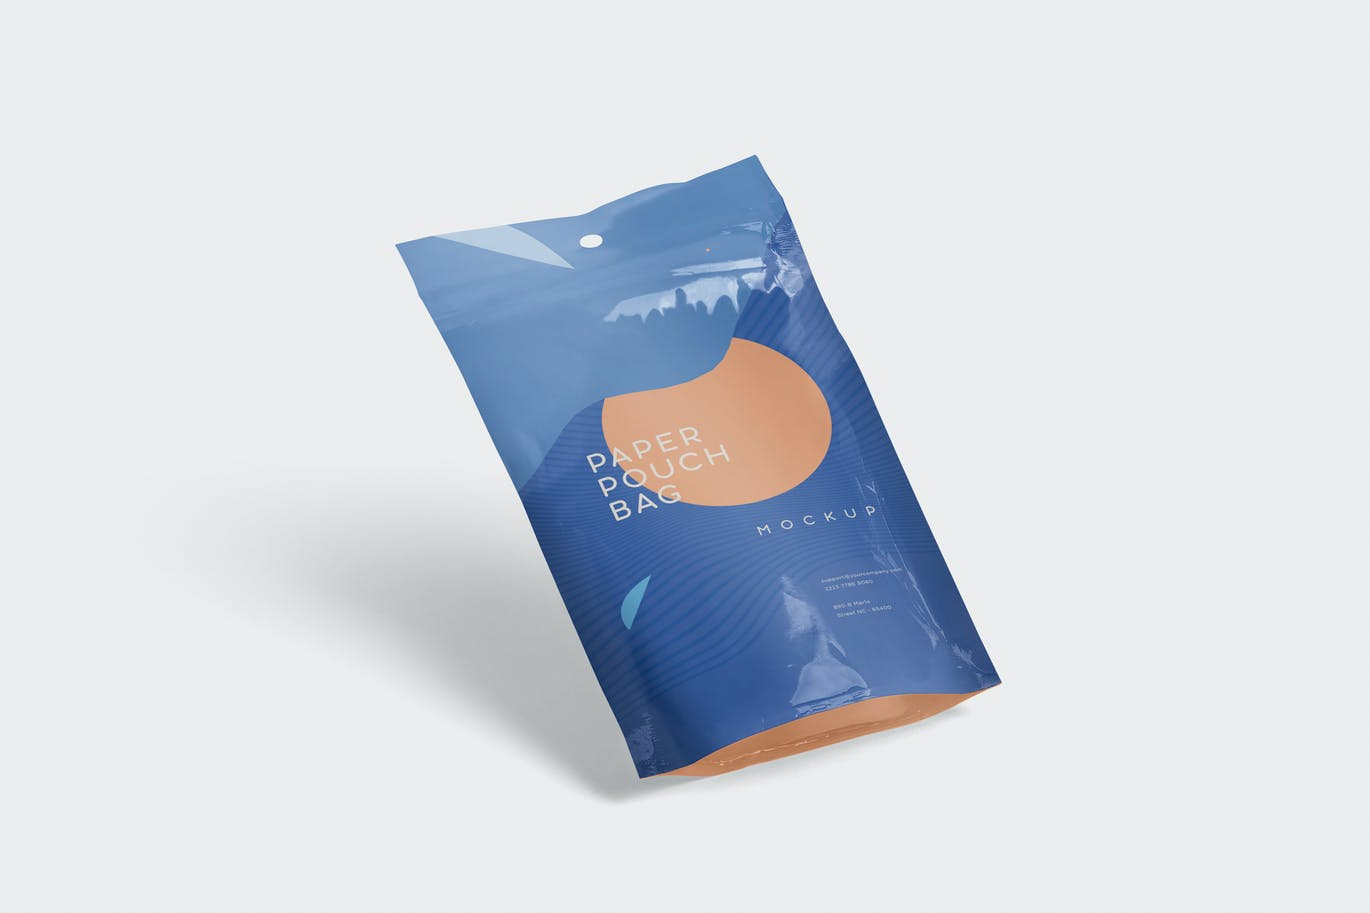 Paper Pouch Bag Mockup in Small Size